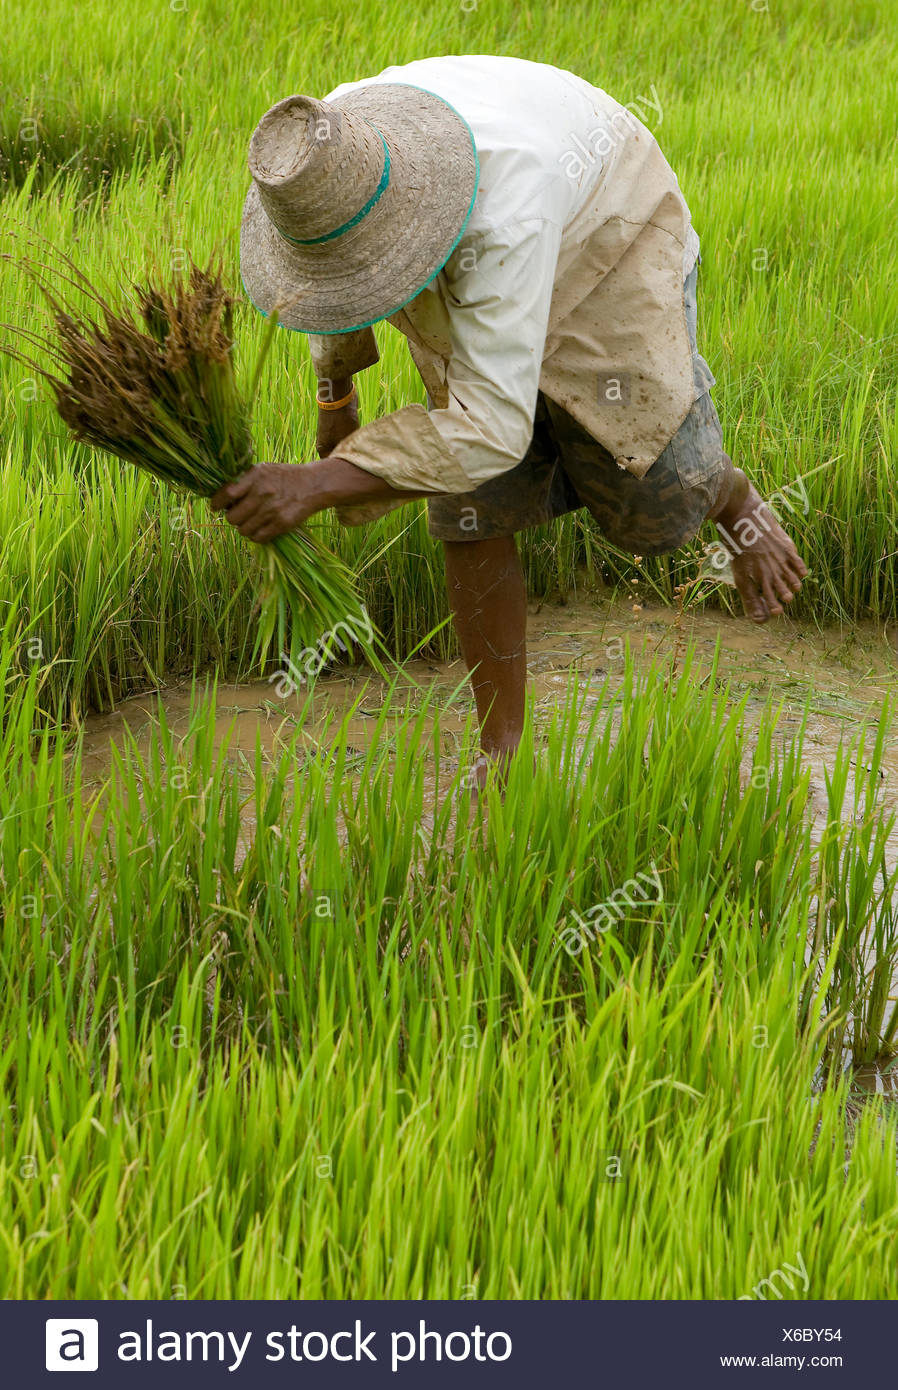 asia thailand paddy field Stock Photo